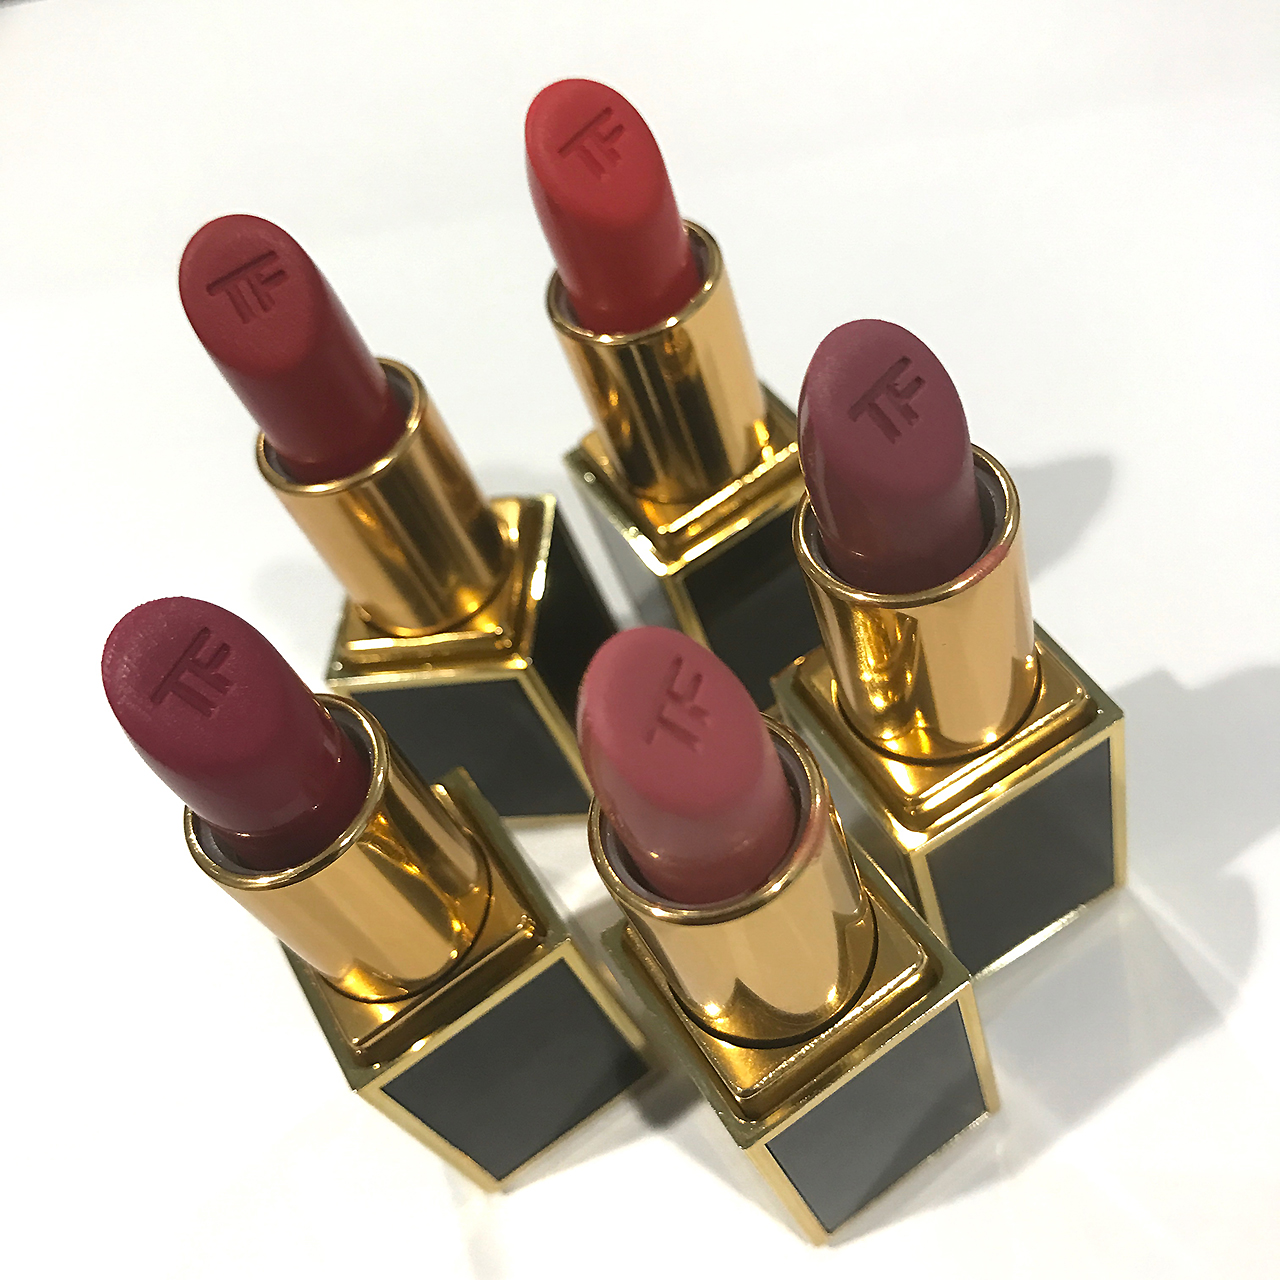 Tom Ford Lips & Boys 2016 - matte